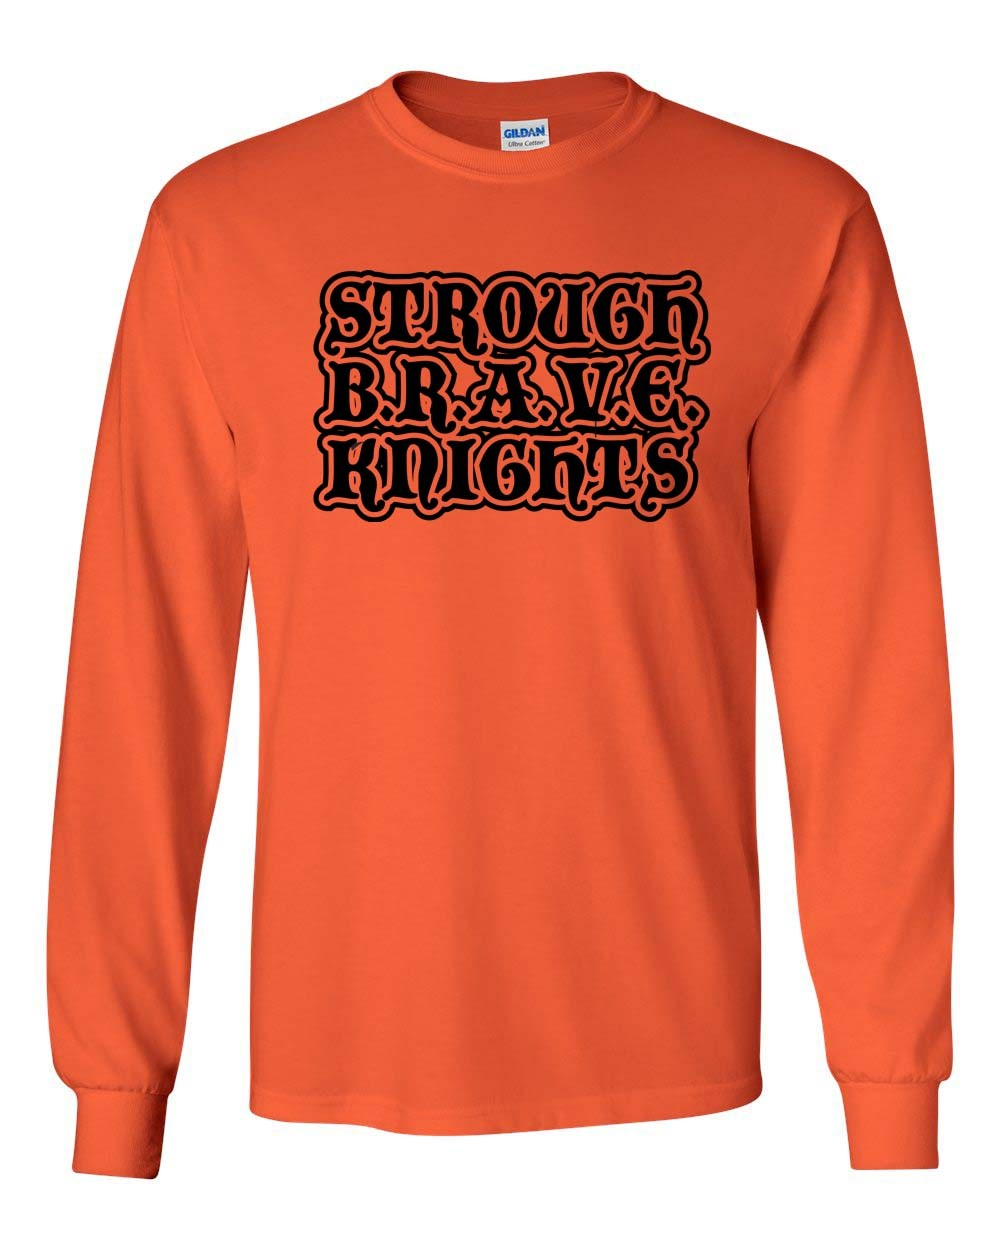 B.R.A.V.E. Knights Long Sleeve Tee